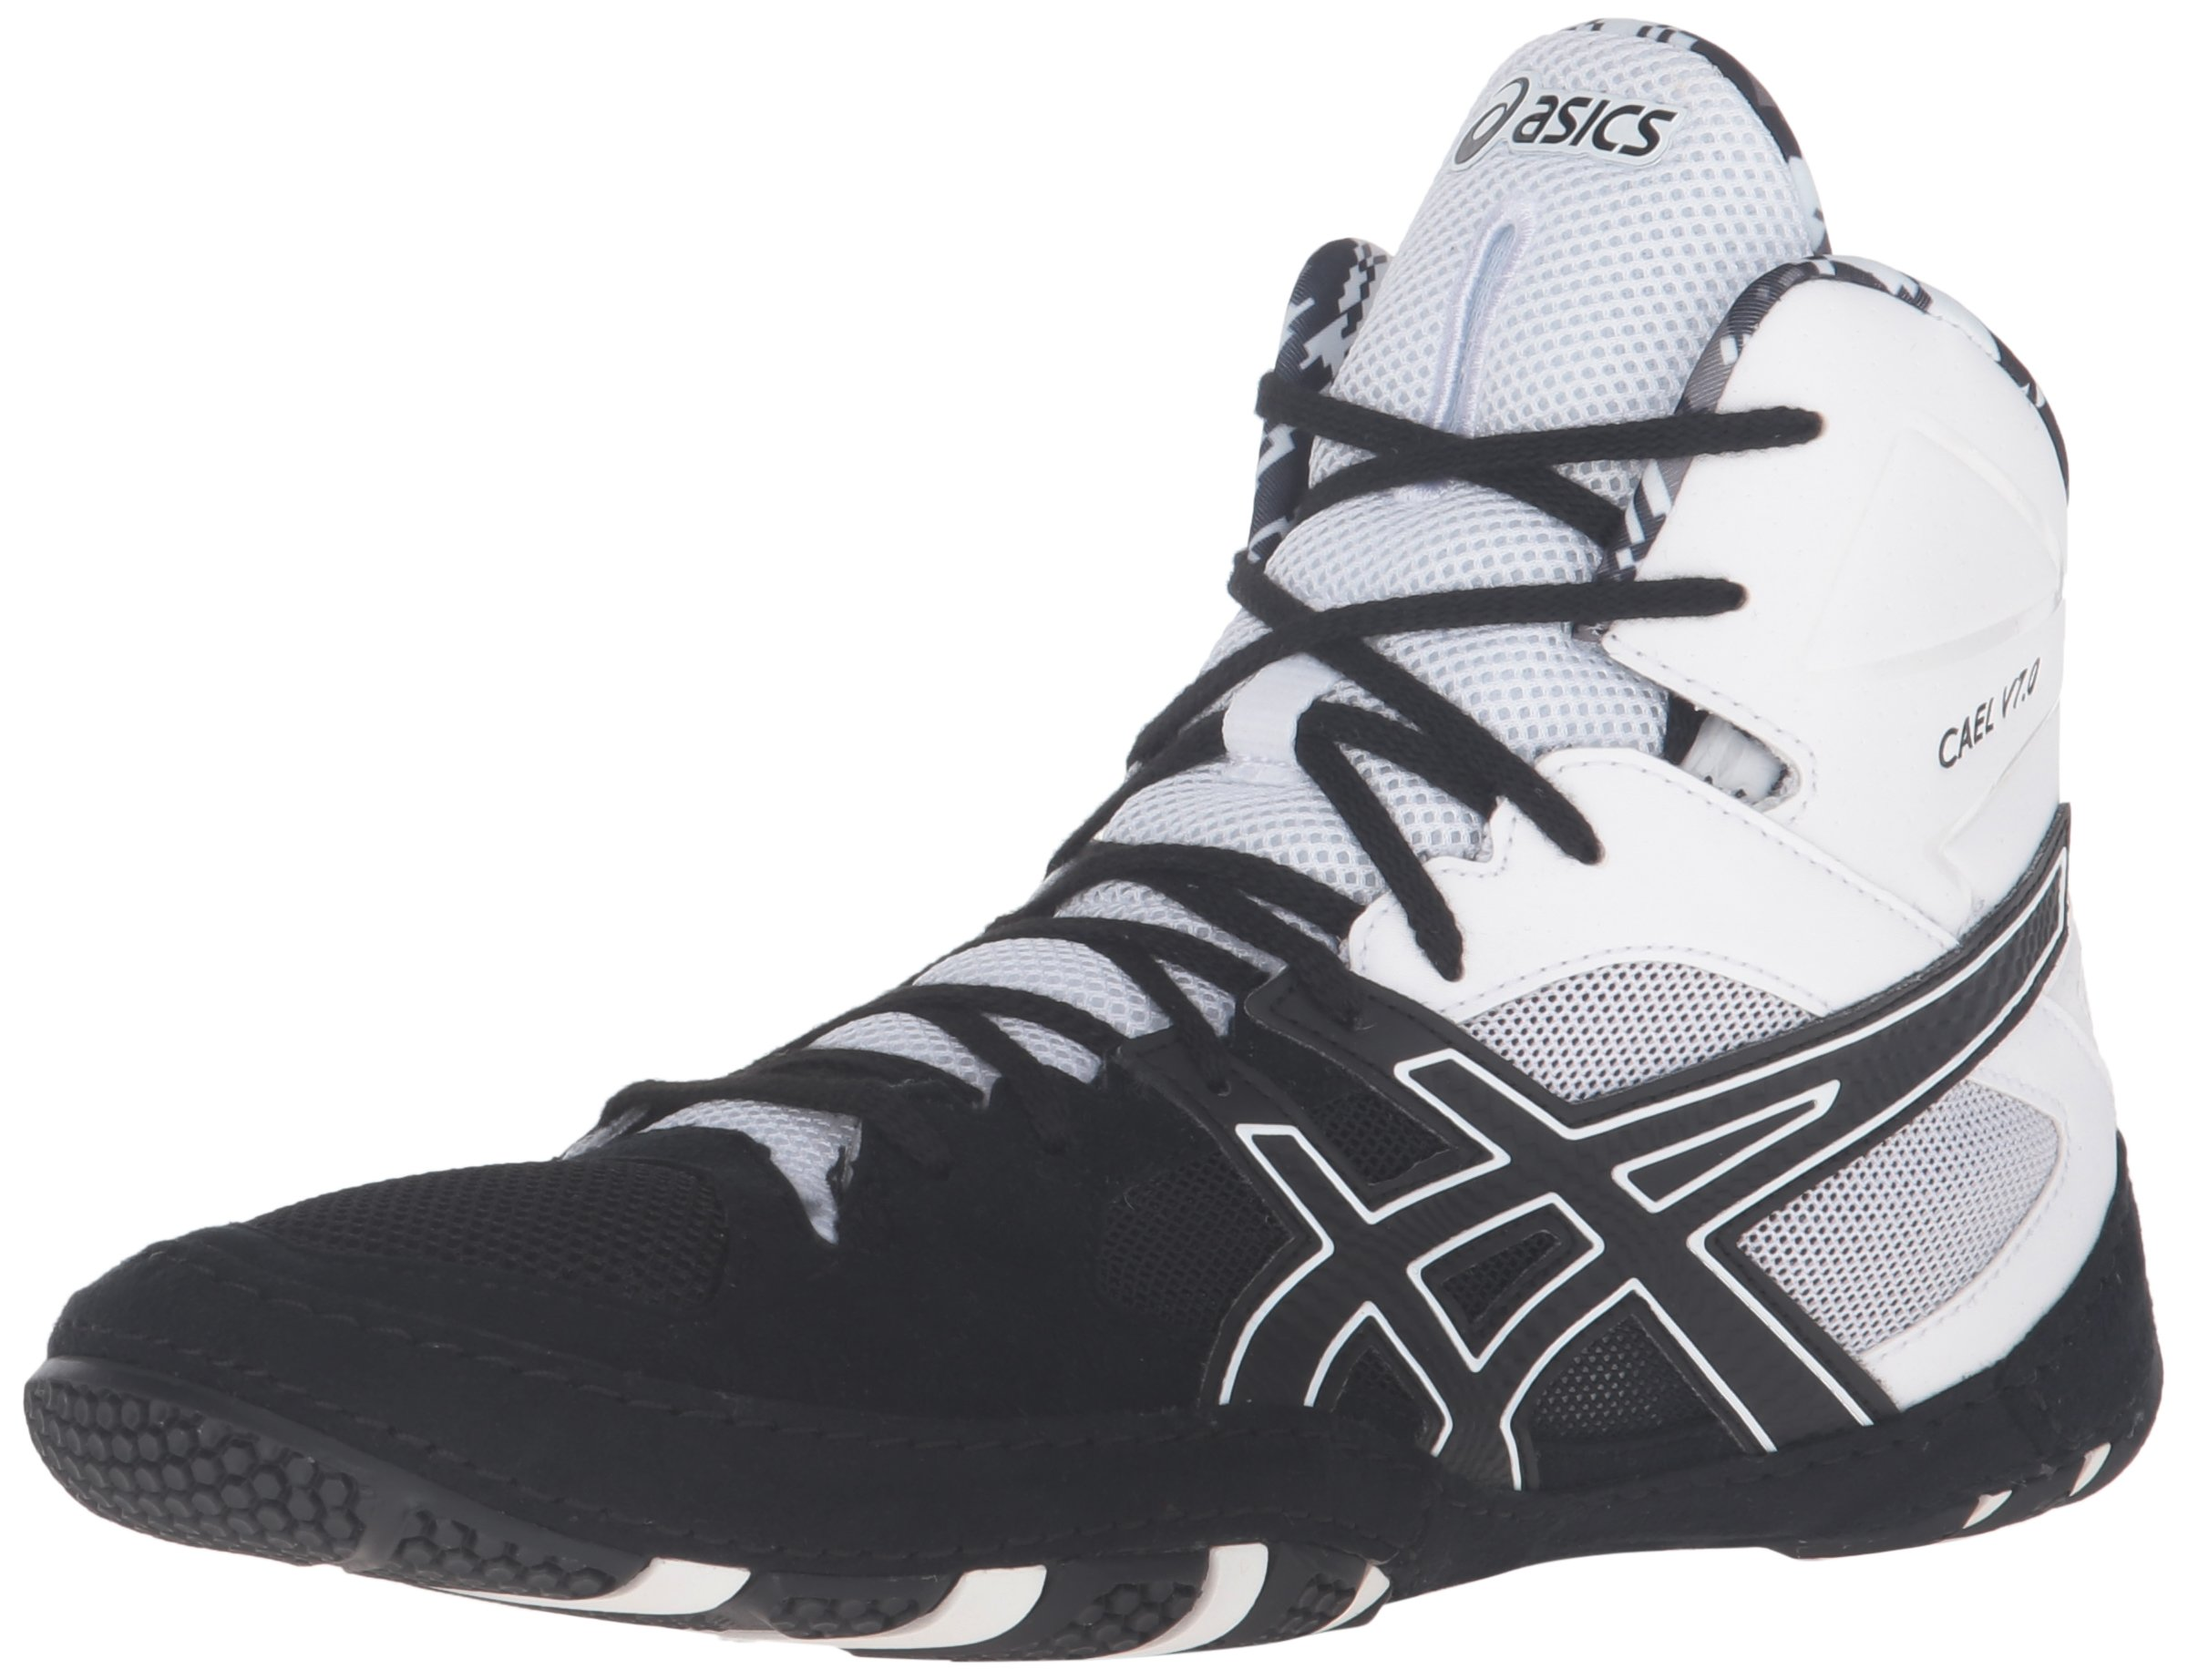 ASICS Men's Cael V7.0 Wrestling Shoe, Black/Onyx/White, 9.5 M US